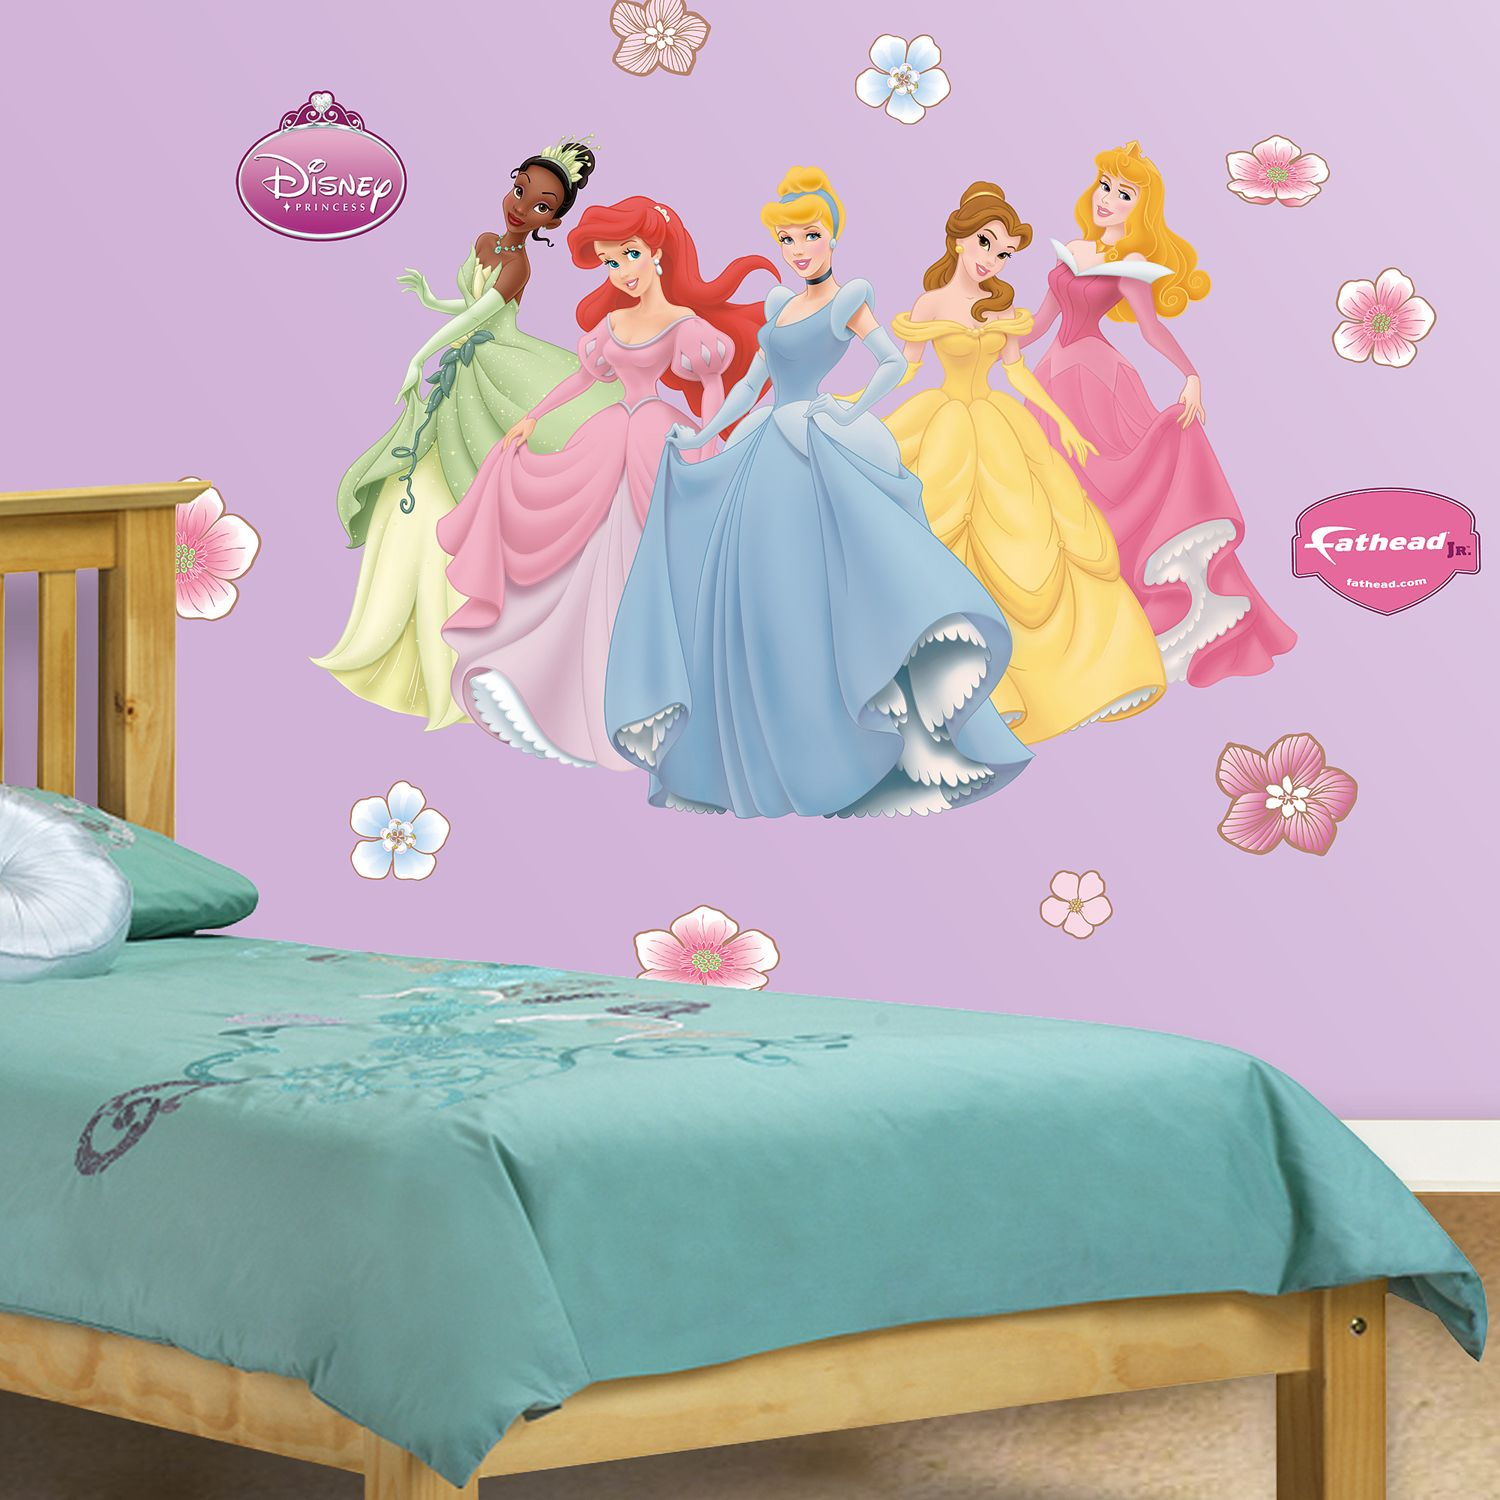 Superieur Disney Princess Wall Decals By Fathead